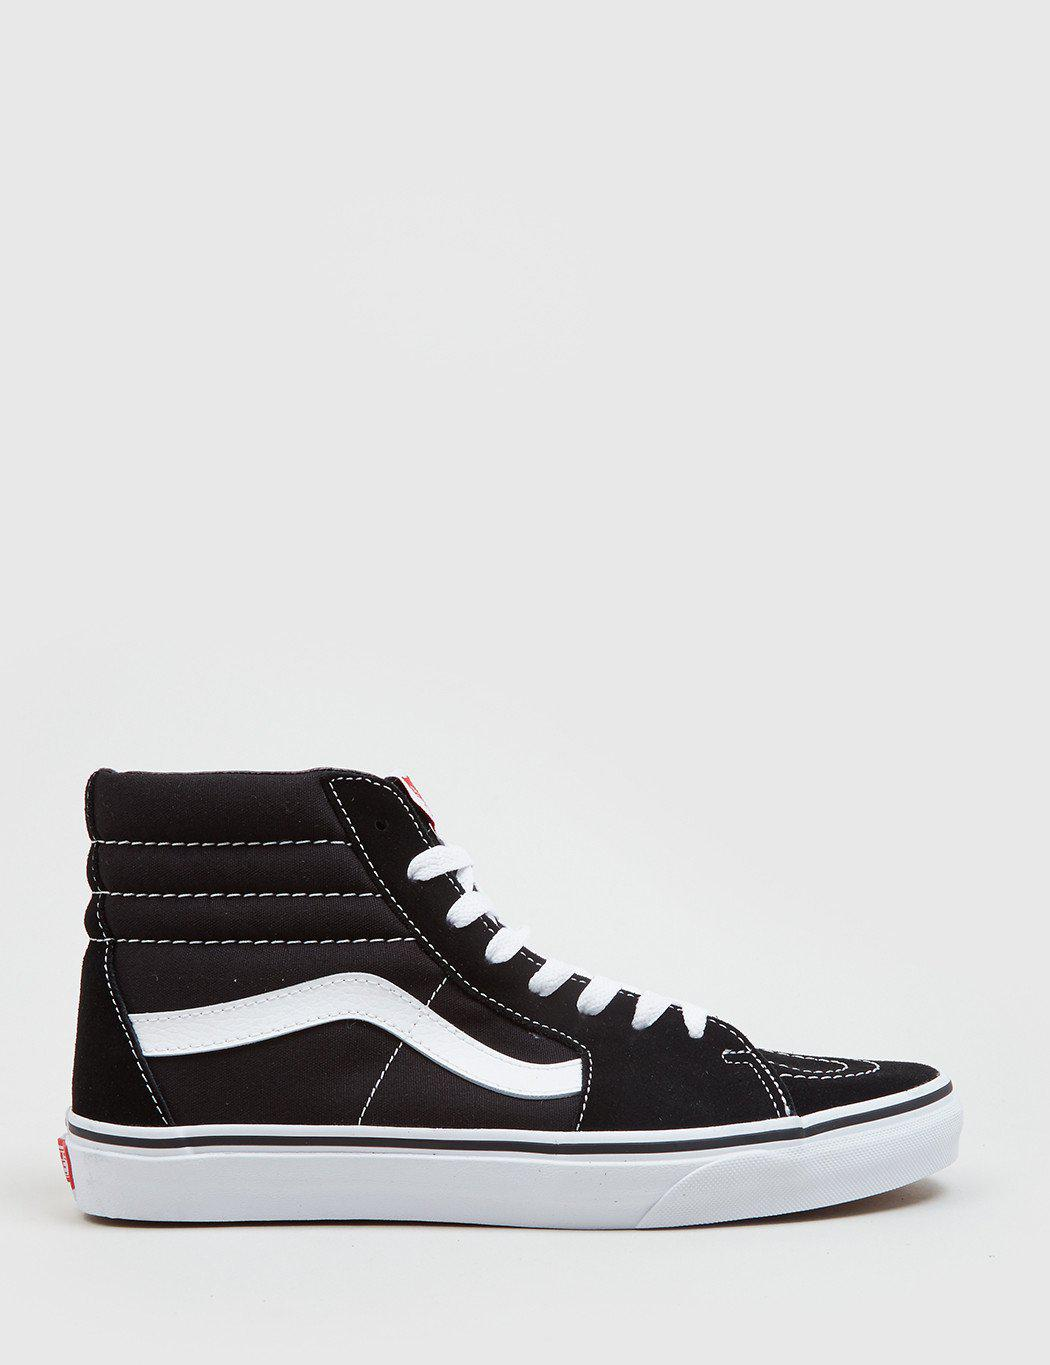 43eaaaf55d Lyst - Vans Sk8-hi 38 Dx (leather) in Black for Men - Save ...